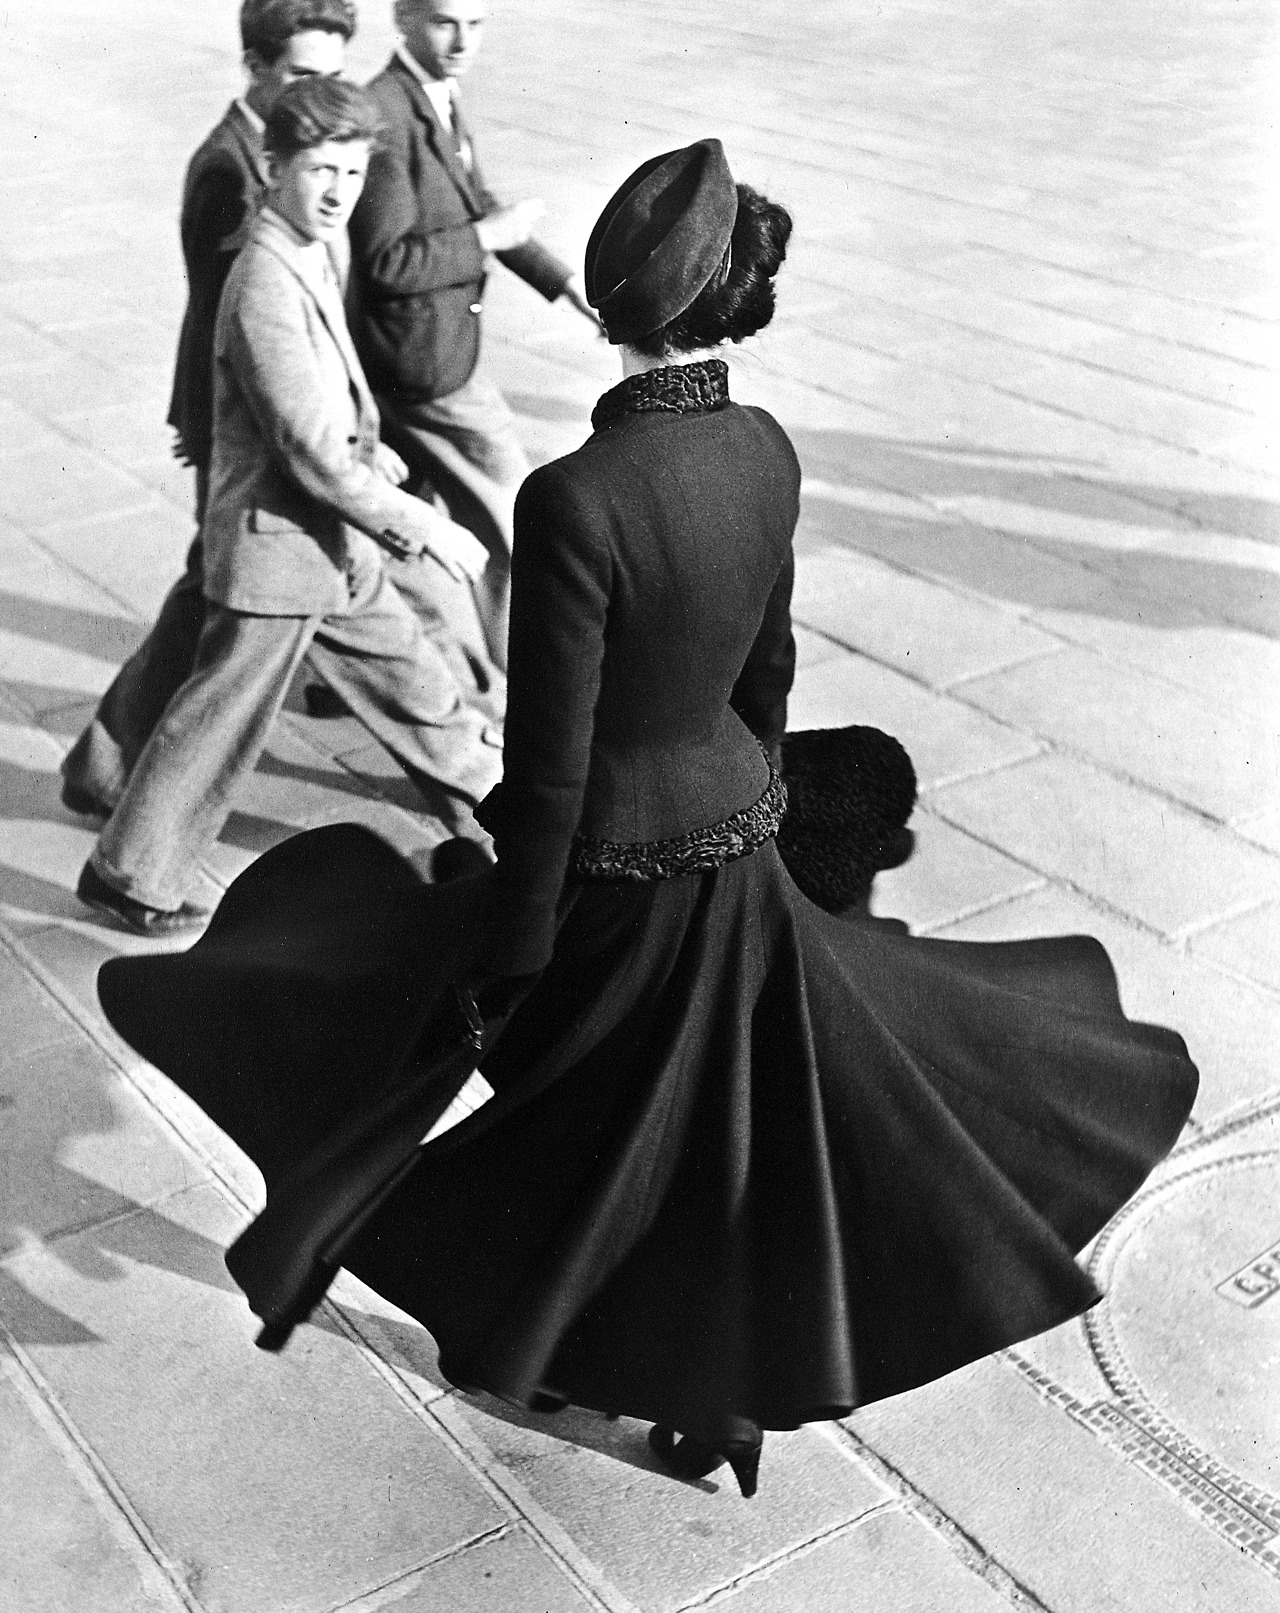 Christian Dior, The New Look - August 1947 - Place de la Concorde, Paris - Photo by Richard Avedon - http://www.avedonfoundation.org/